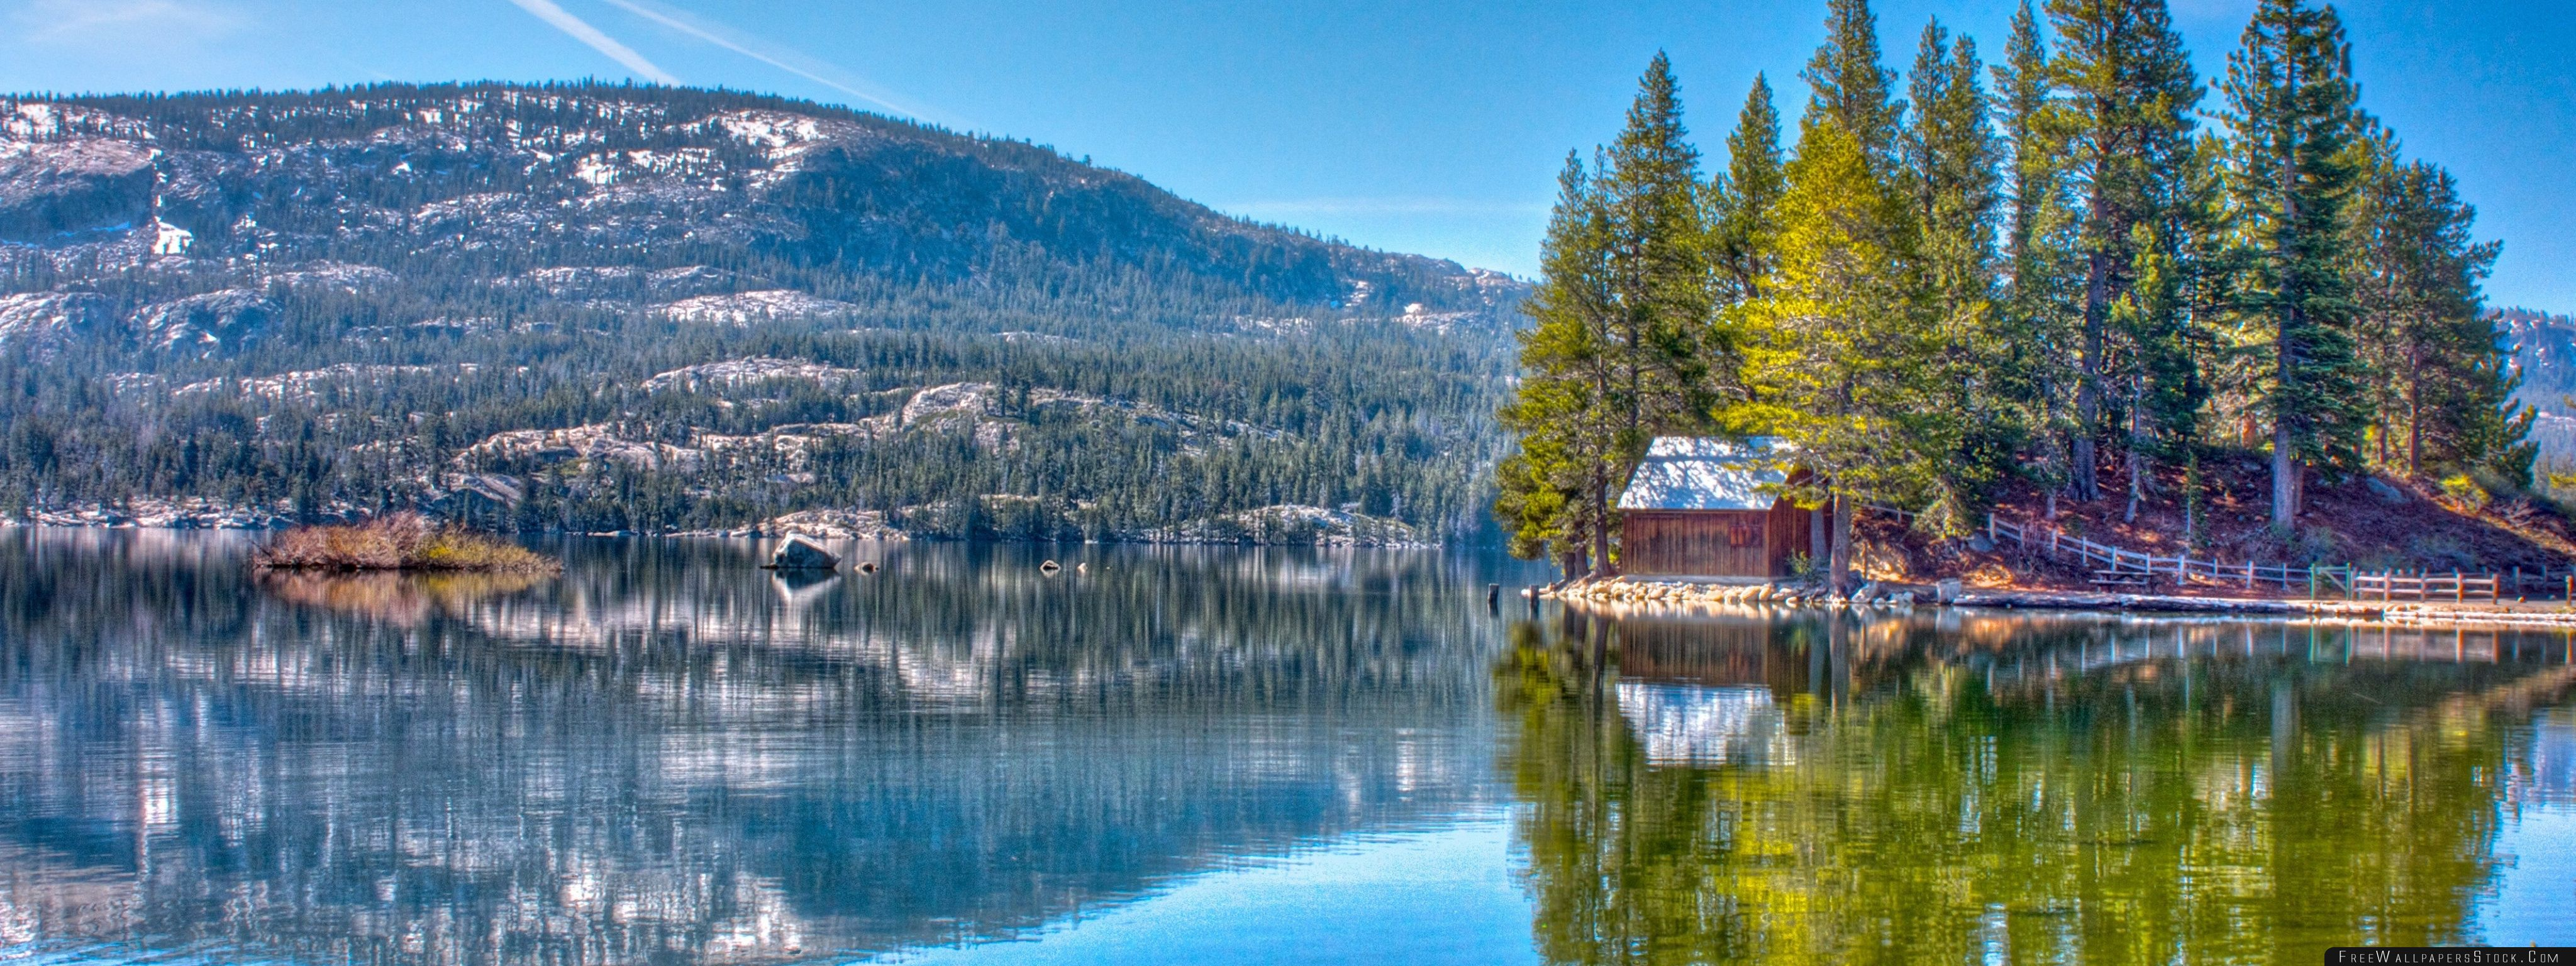 Download Free Wallpaper Red Lake Toiyabe National Forest